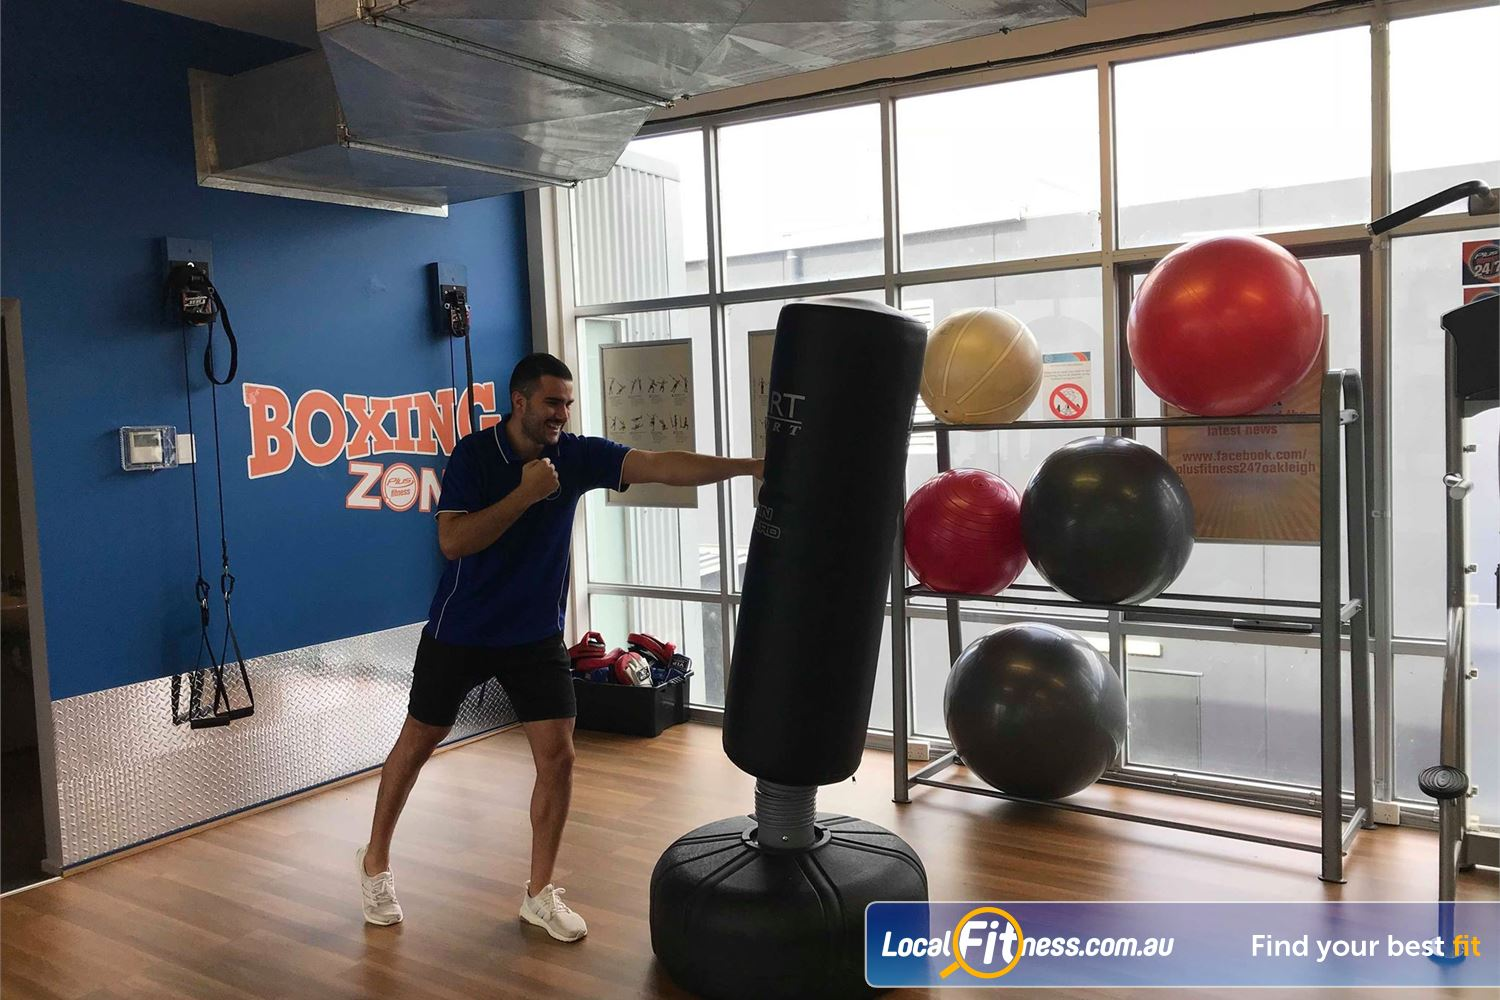 Plus Fitness 24/7 Oakleigh Dedicated functional area with free standing boxing zone in Oakleigh.